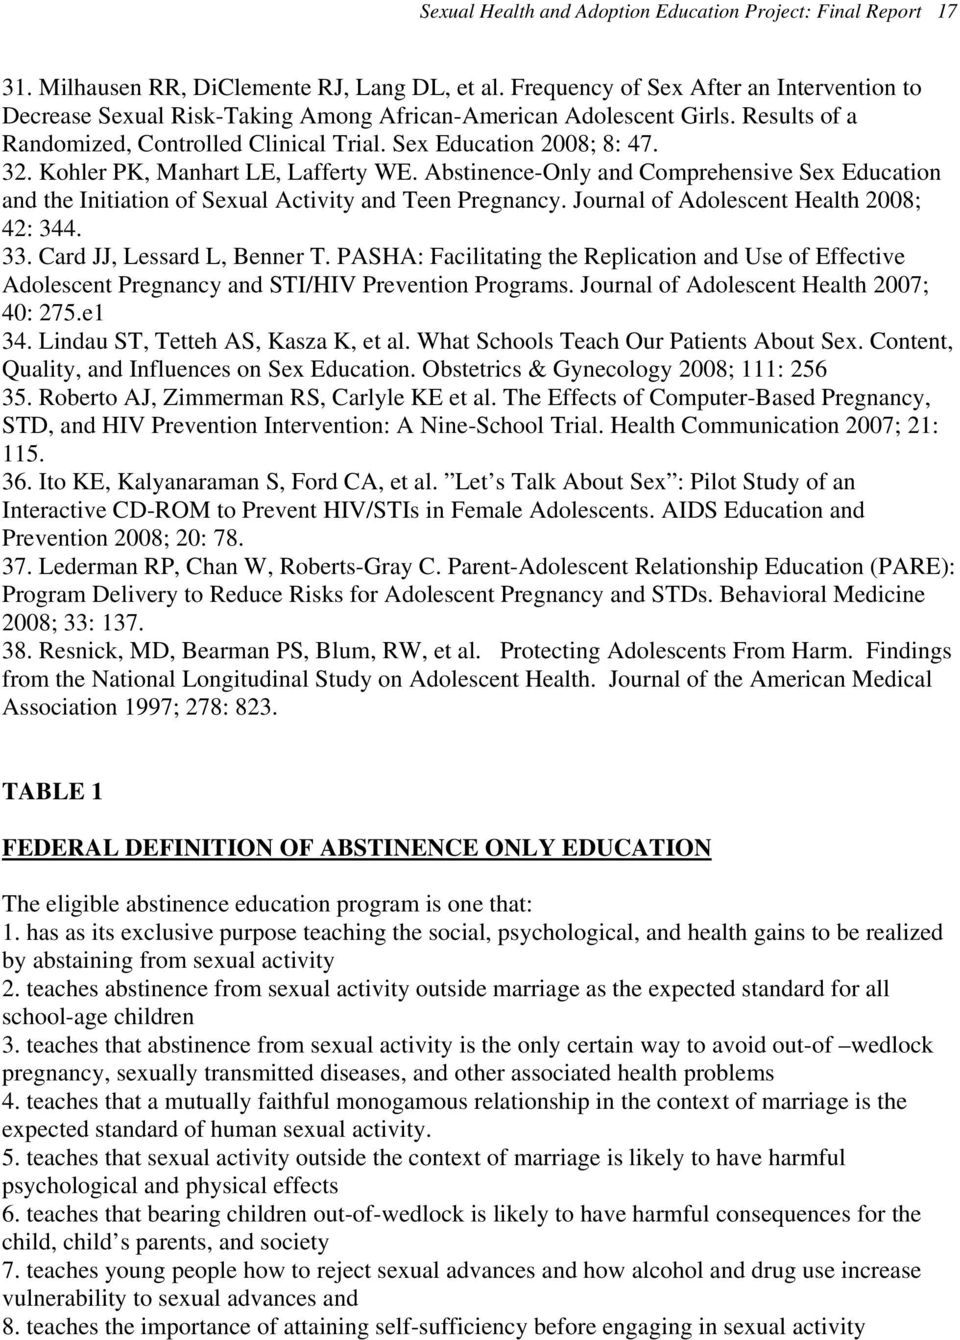 Kohler PK, Manhart LE, Lafferty WE. Abstinence-Only and Comprehensive Sex Education and the Initiation of Sexual Activity and Teen Pregnancy. Journal of Adolescent Health 2008; 42: 344. 33.